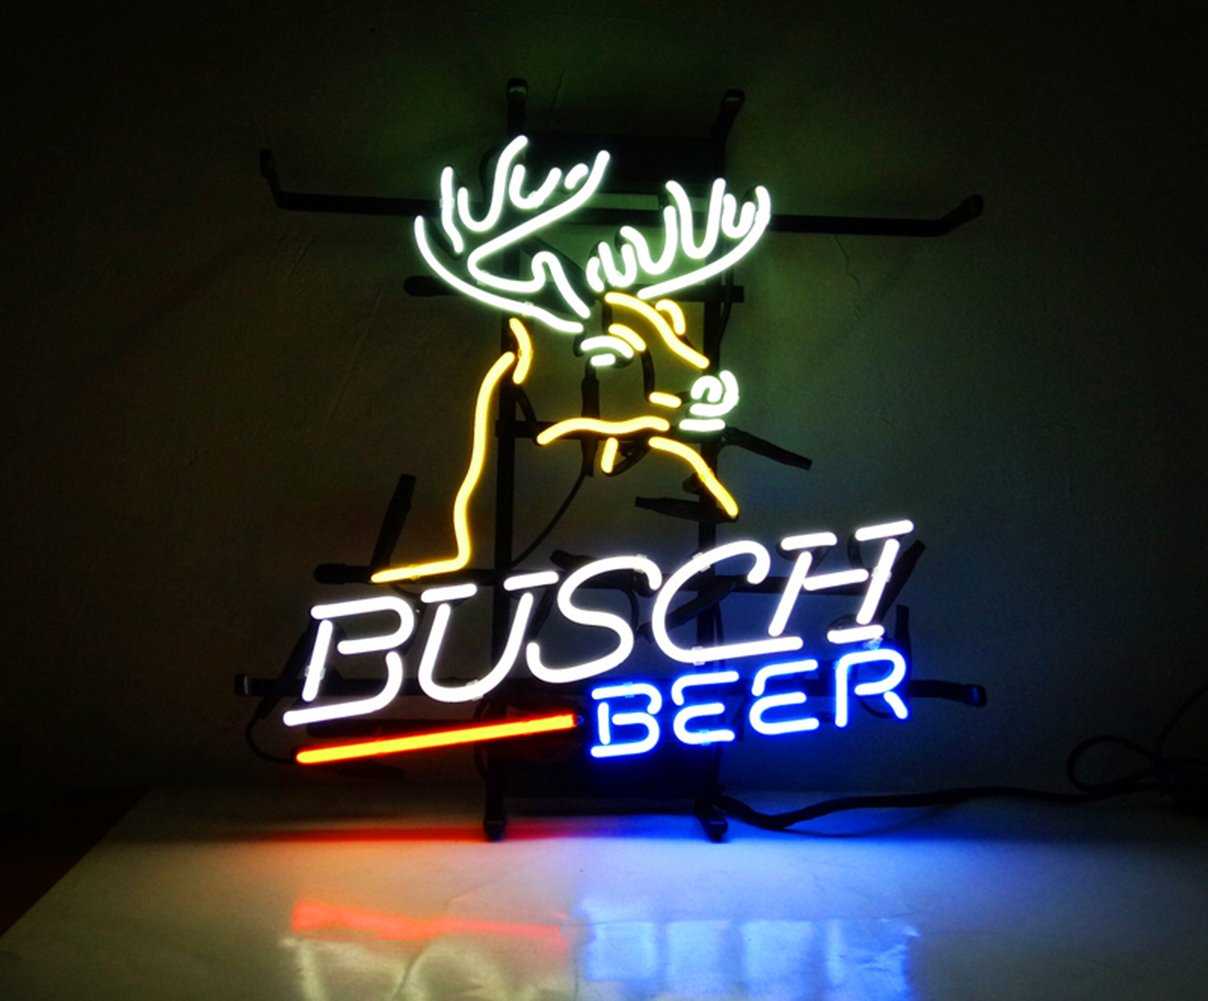 New Neon Signs Busch Beer for Bar Pub Home Hotel Beach Cocktail Recreational Game Room Decor 16